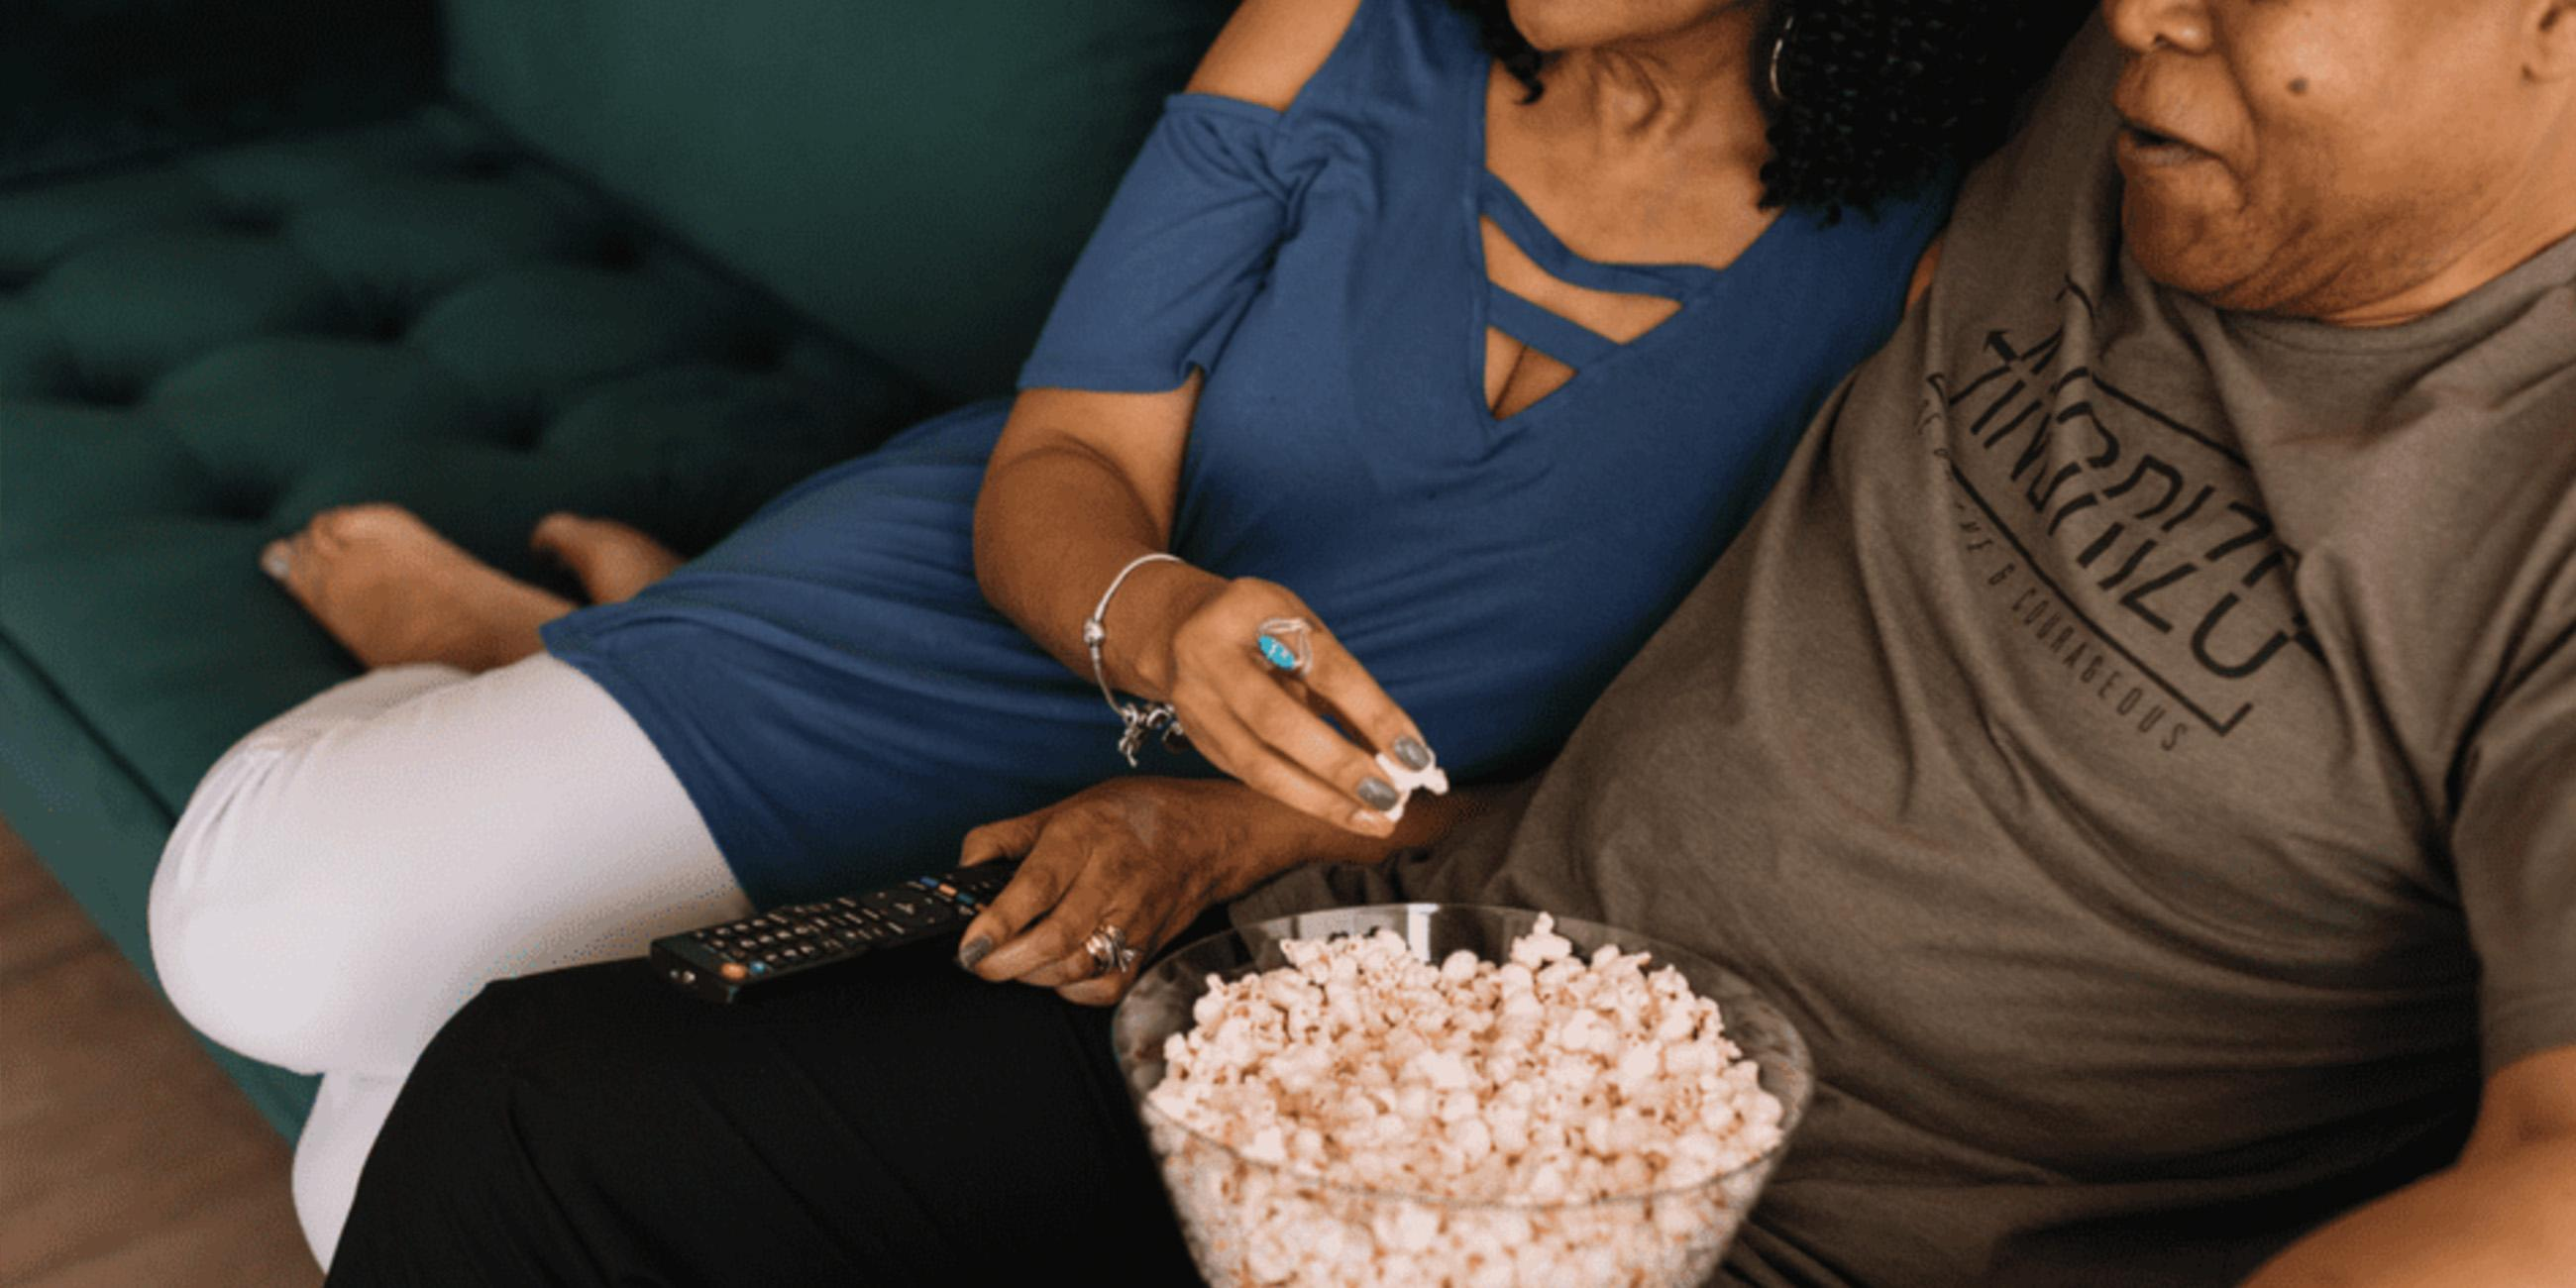 A couple eating popcorn at home.